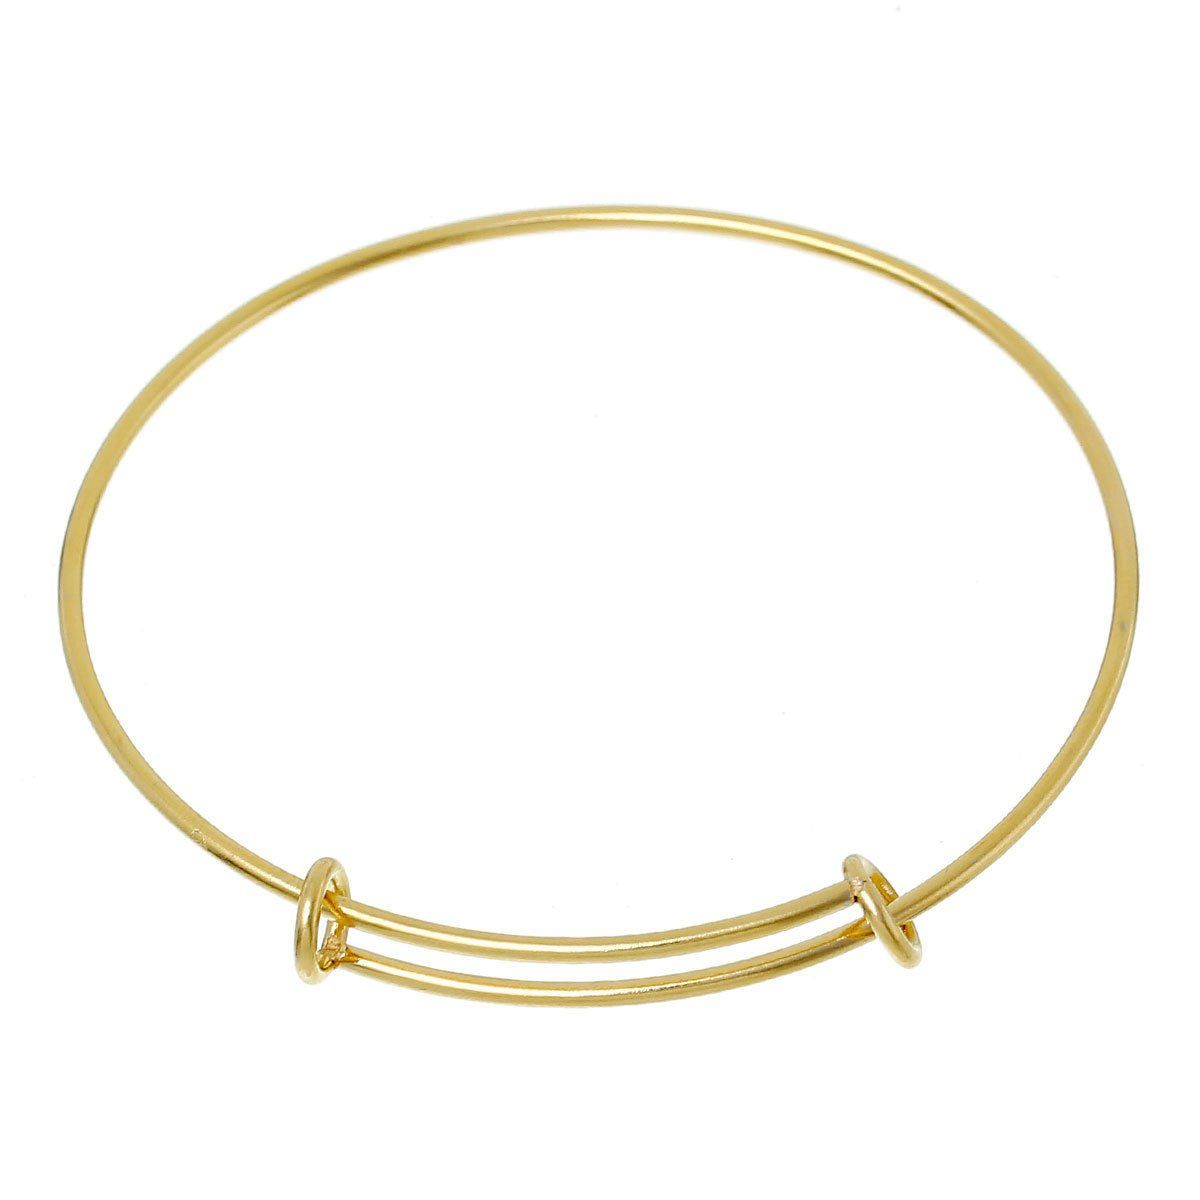 10 Gold Plated Stainless Steel Bangle Charm Bracelet Adjustable Size Expands To Fit Small To Medium Wrist Thick 14 Gauge Fin0428b Bangle Bracelets With Charms Stainless Steel Bracelet Bracelets